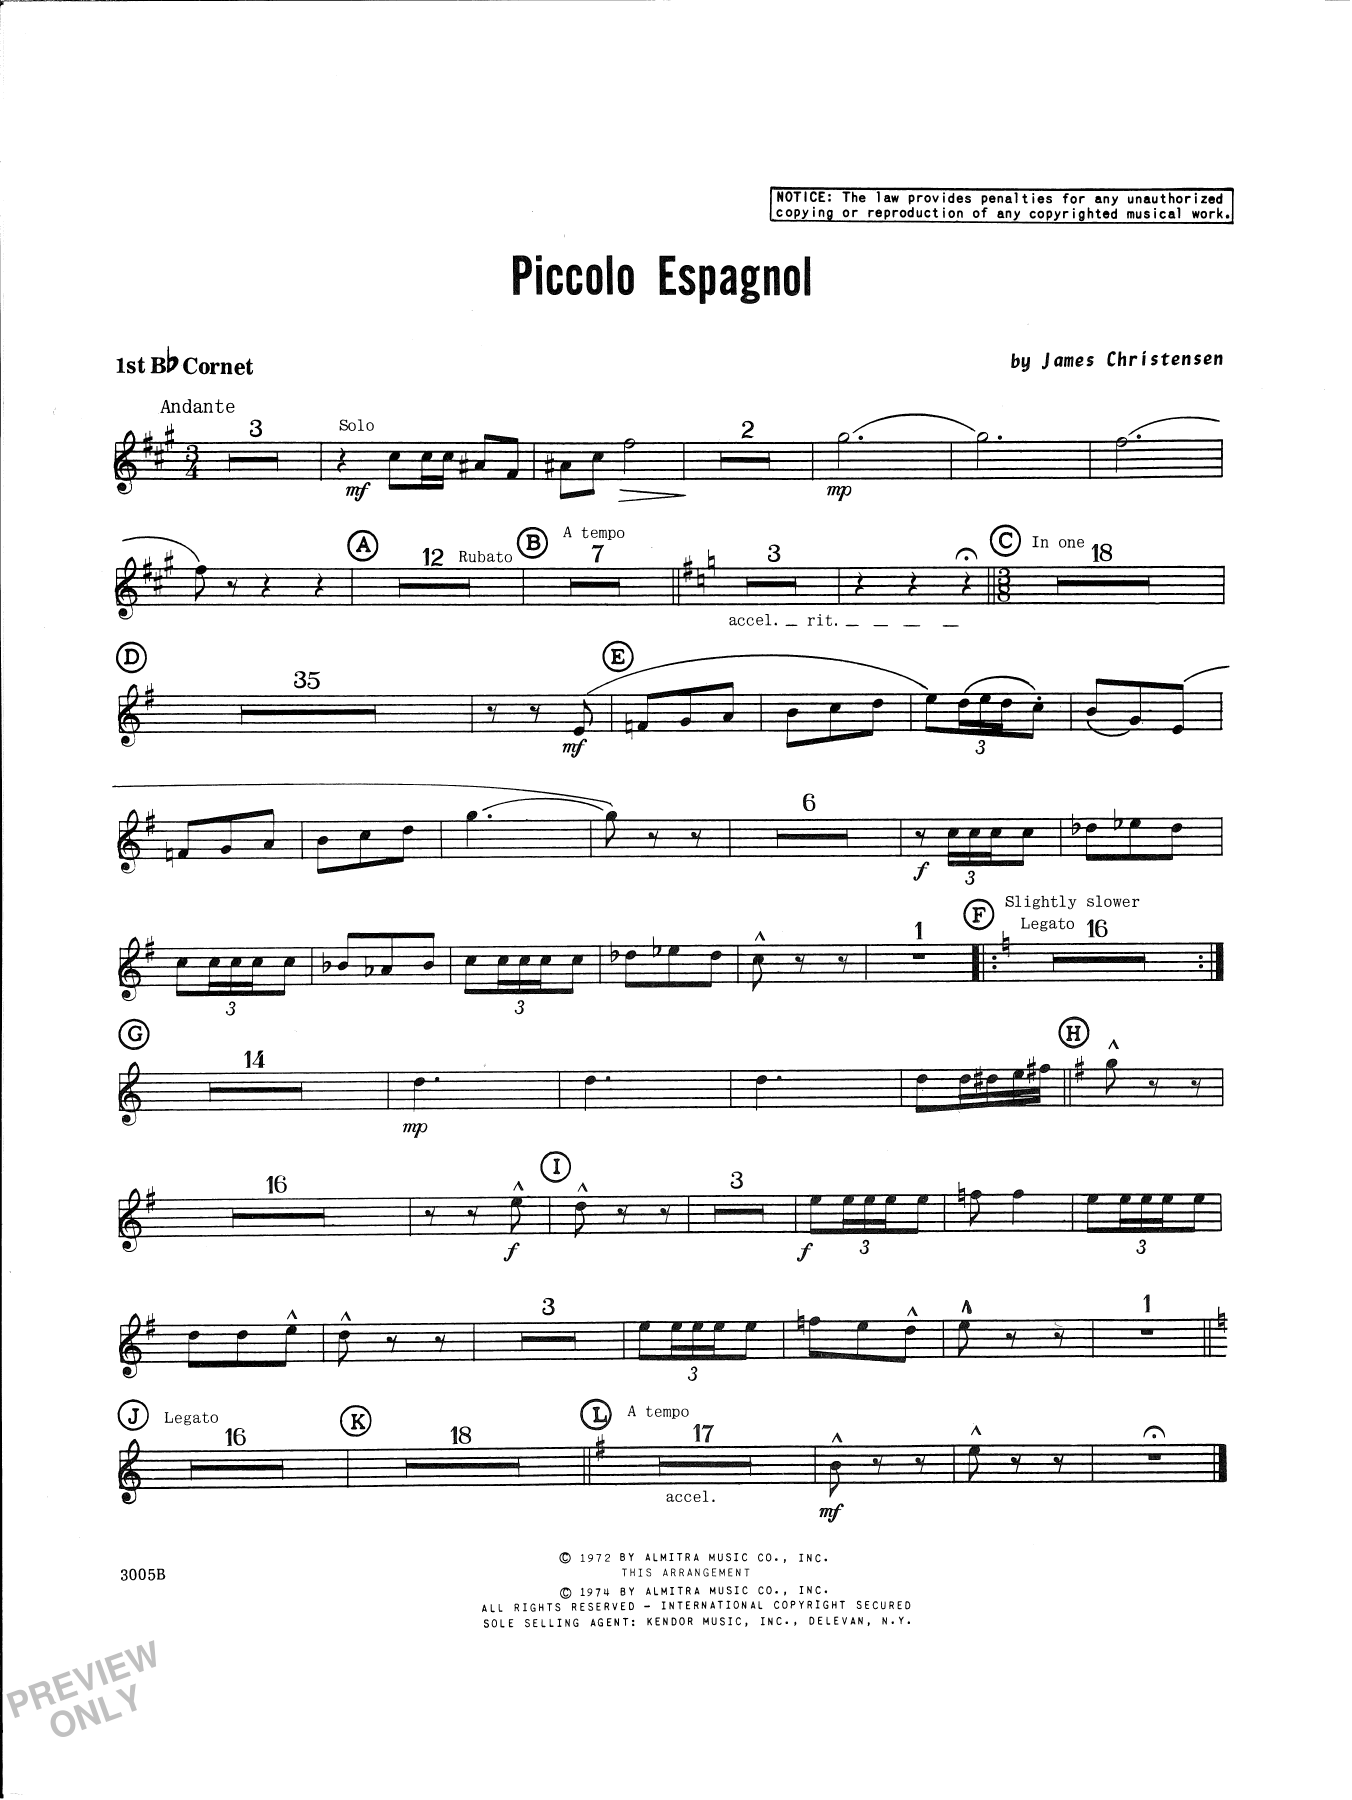 James Christensen Piccolo Espagnol - Cornet 1 sheet music notes and chords. Download Printable PDF.